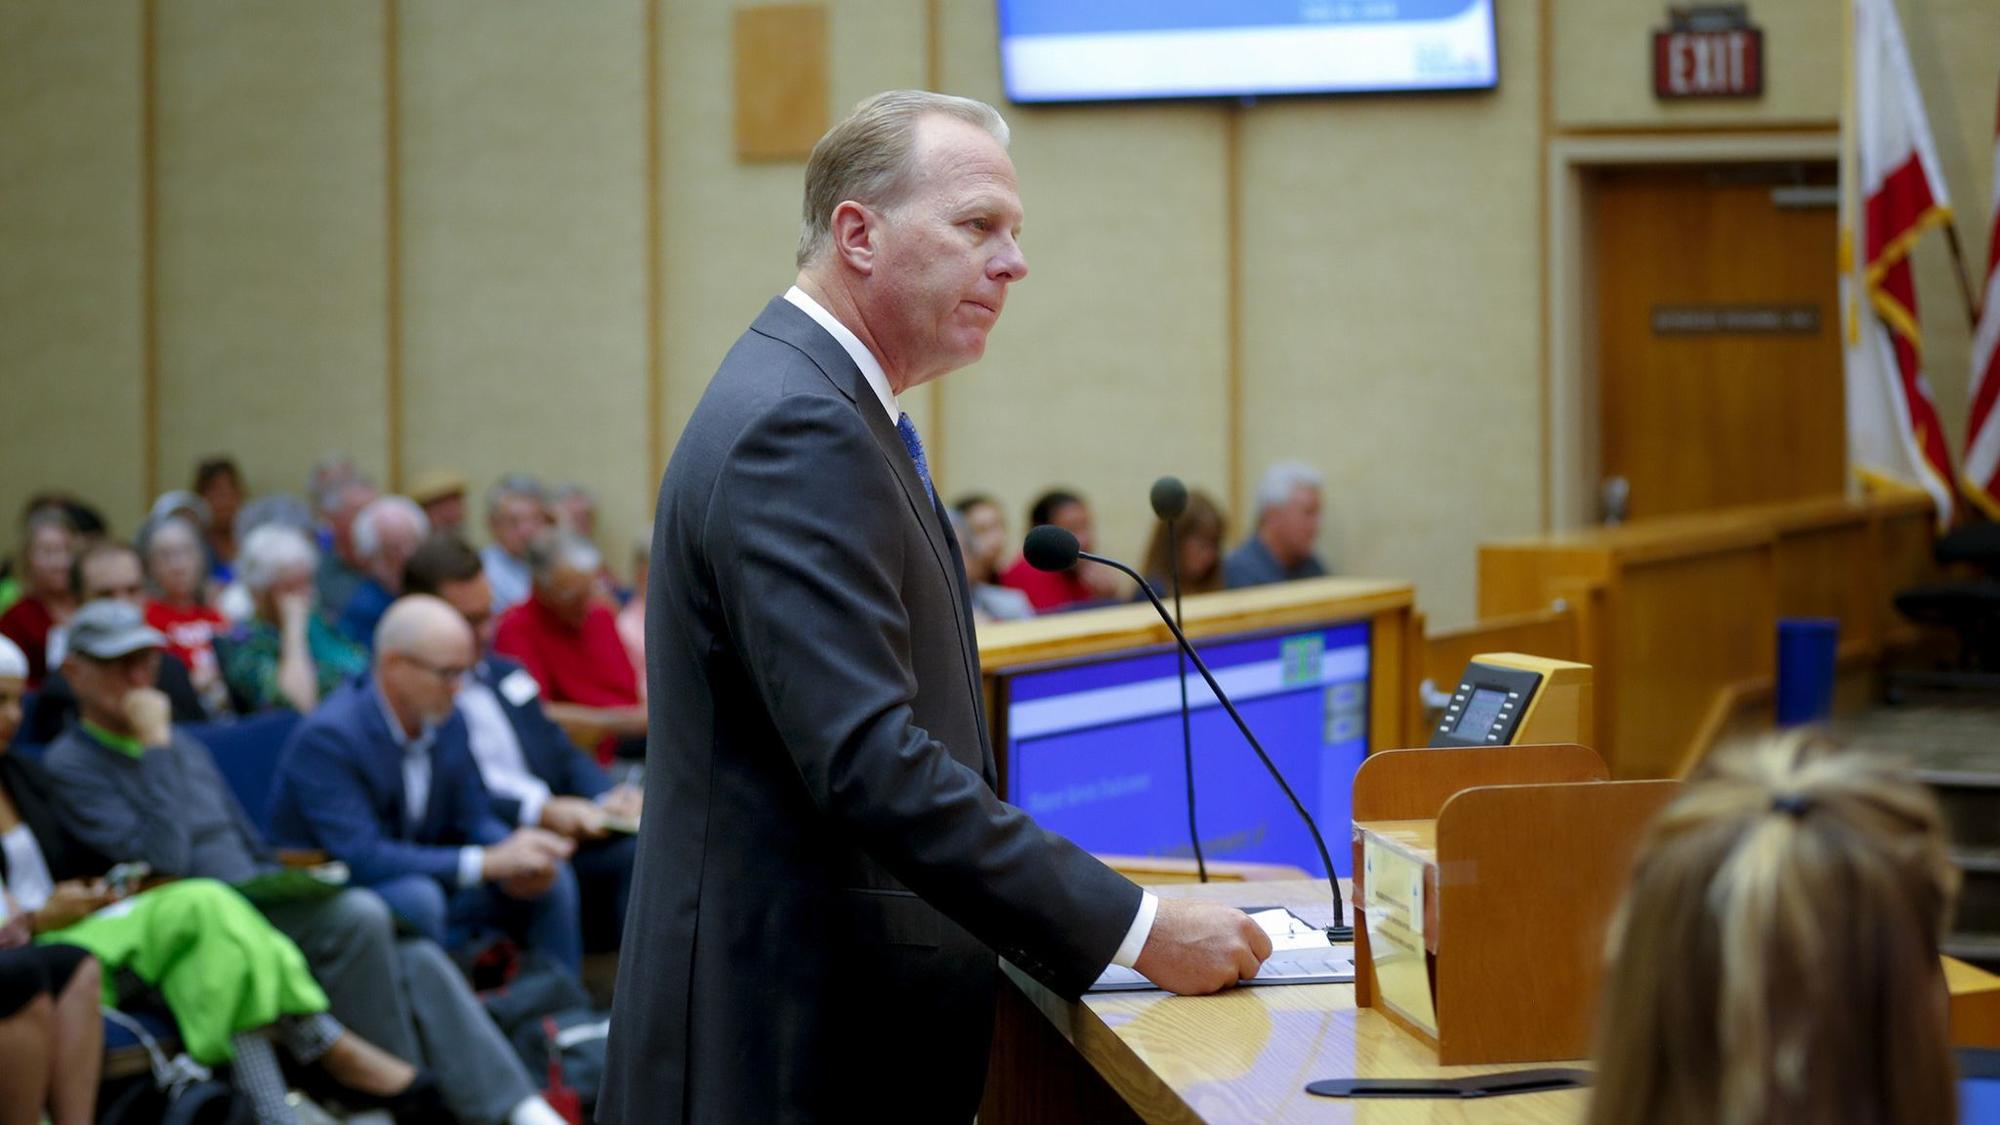 San Diego Mayor Kevin Faulconer addressed the City Council members on Monday afternoon on the issue